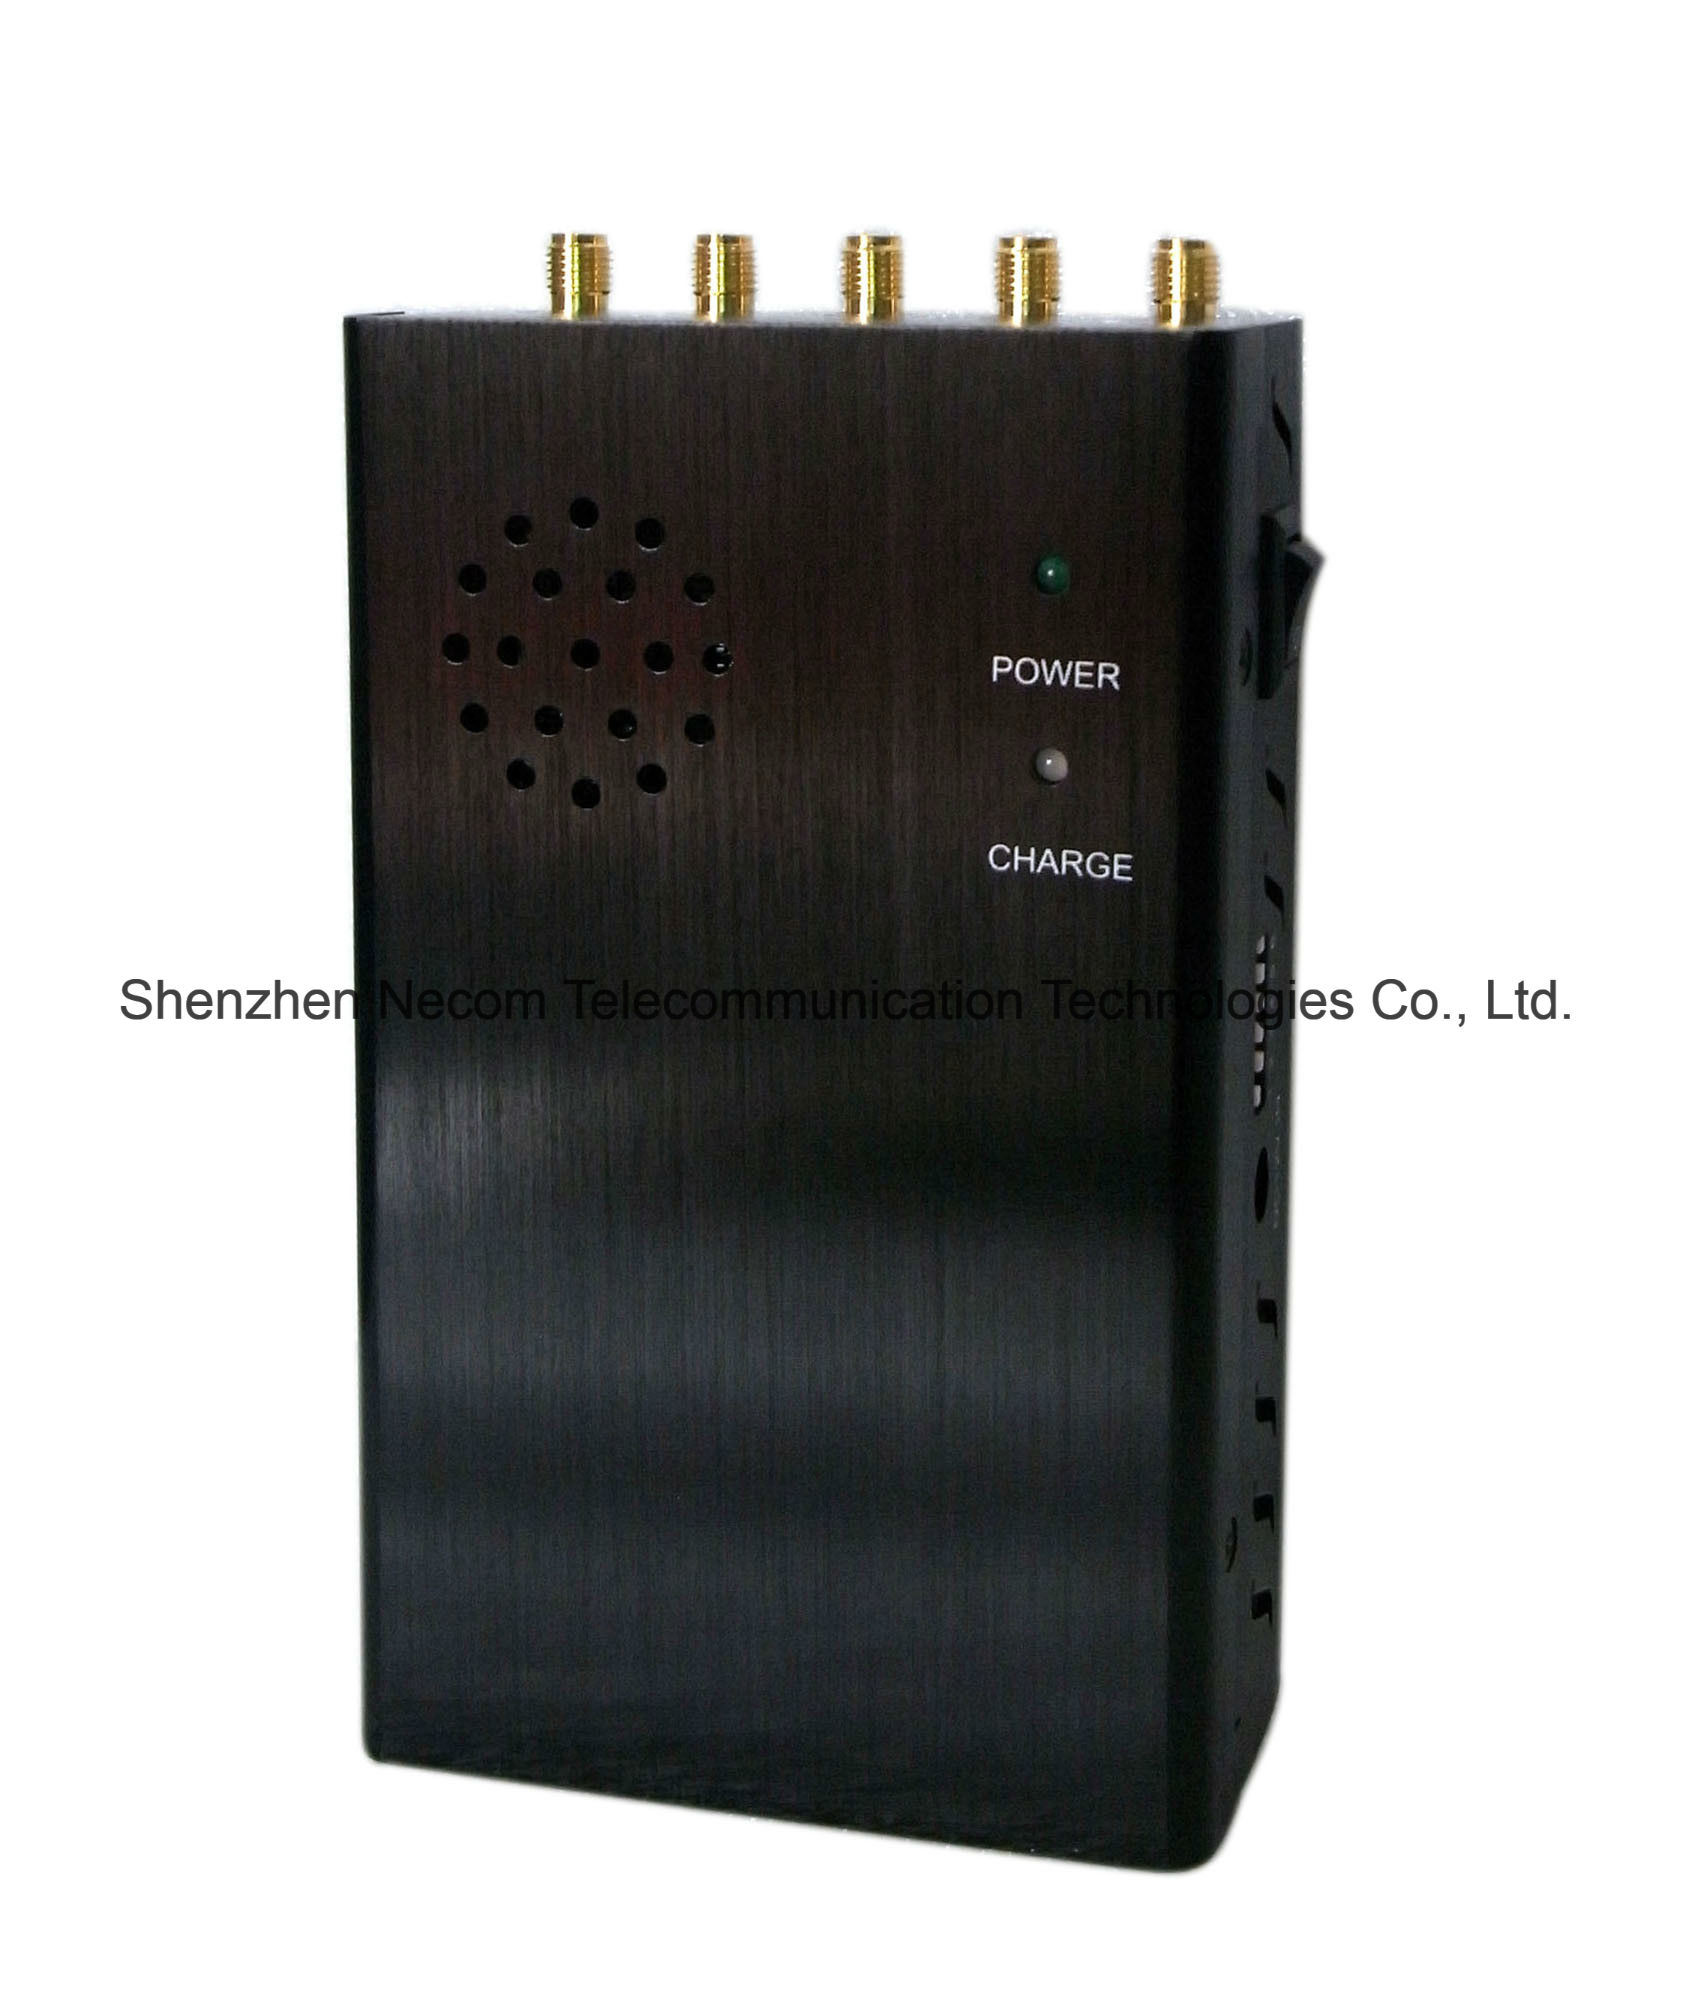 phone mobile jammer machine - China Wireless Signal Jammer with Good Quality&Favourable Price Jamming for Wired Camera, GPS Tracker, Mobile Phones, GSM Jammer/GPS Jammer /Cell Phone Jammer - China 5 Band Signal Blockers, Five Antennas Jammers